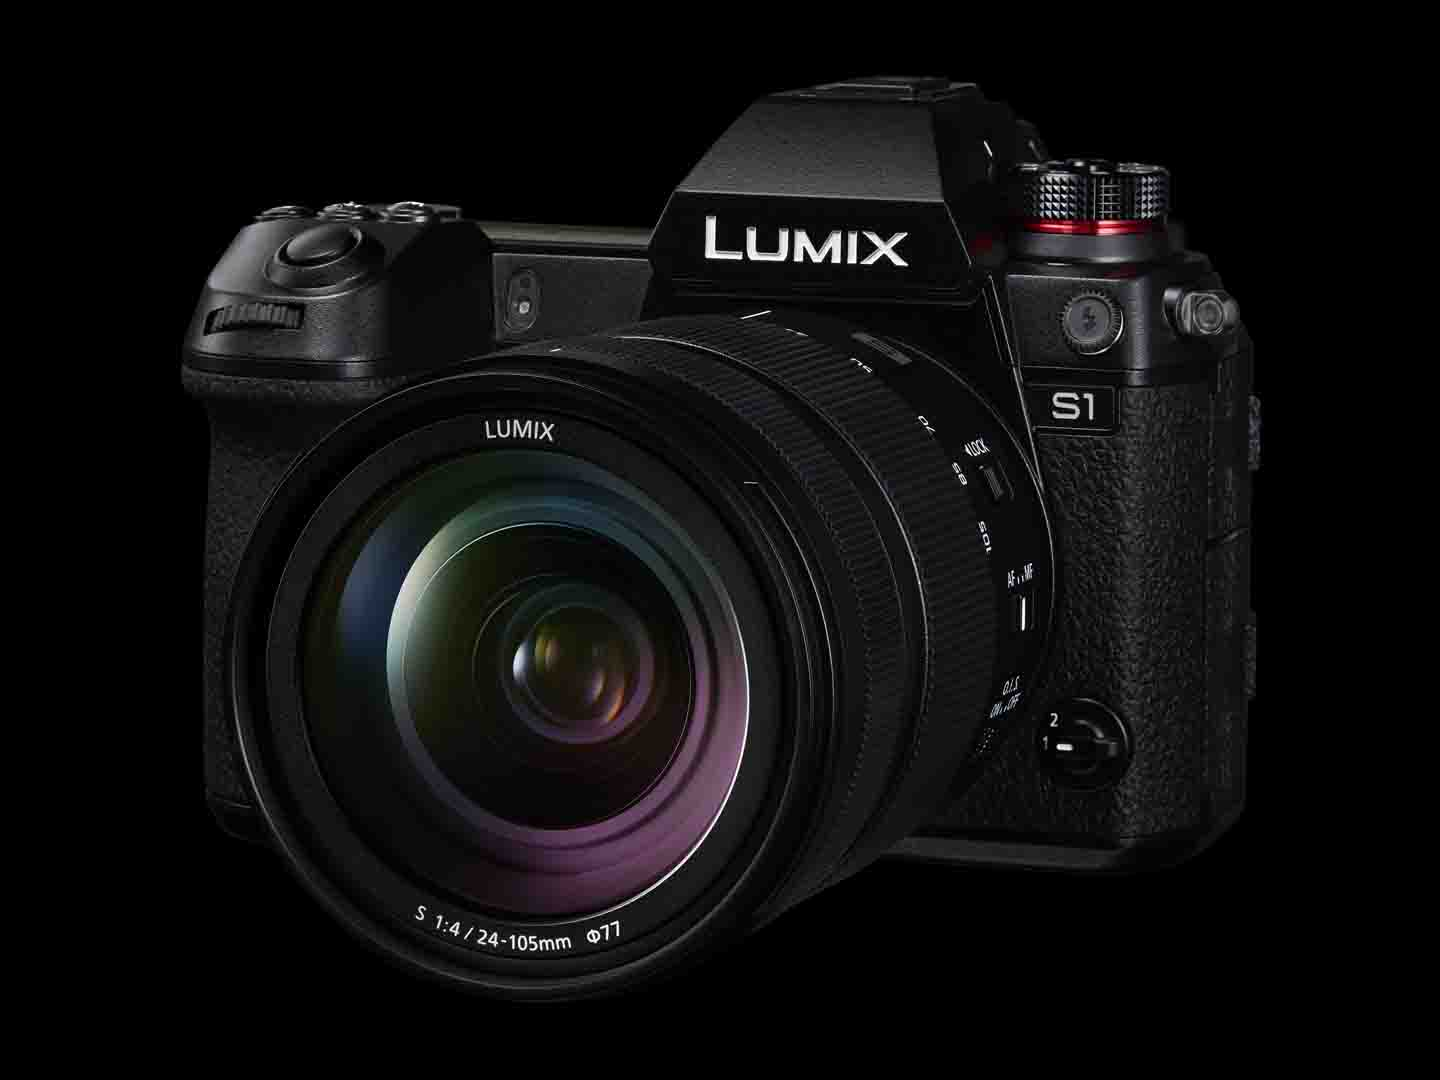 Panasonic LUMIX S1 upgrade adds new advanced shooting modes